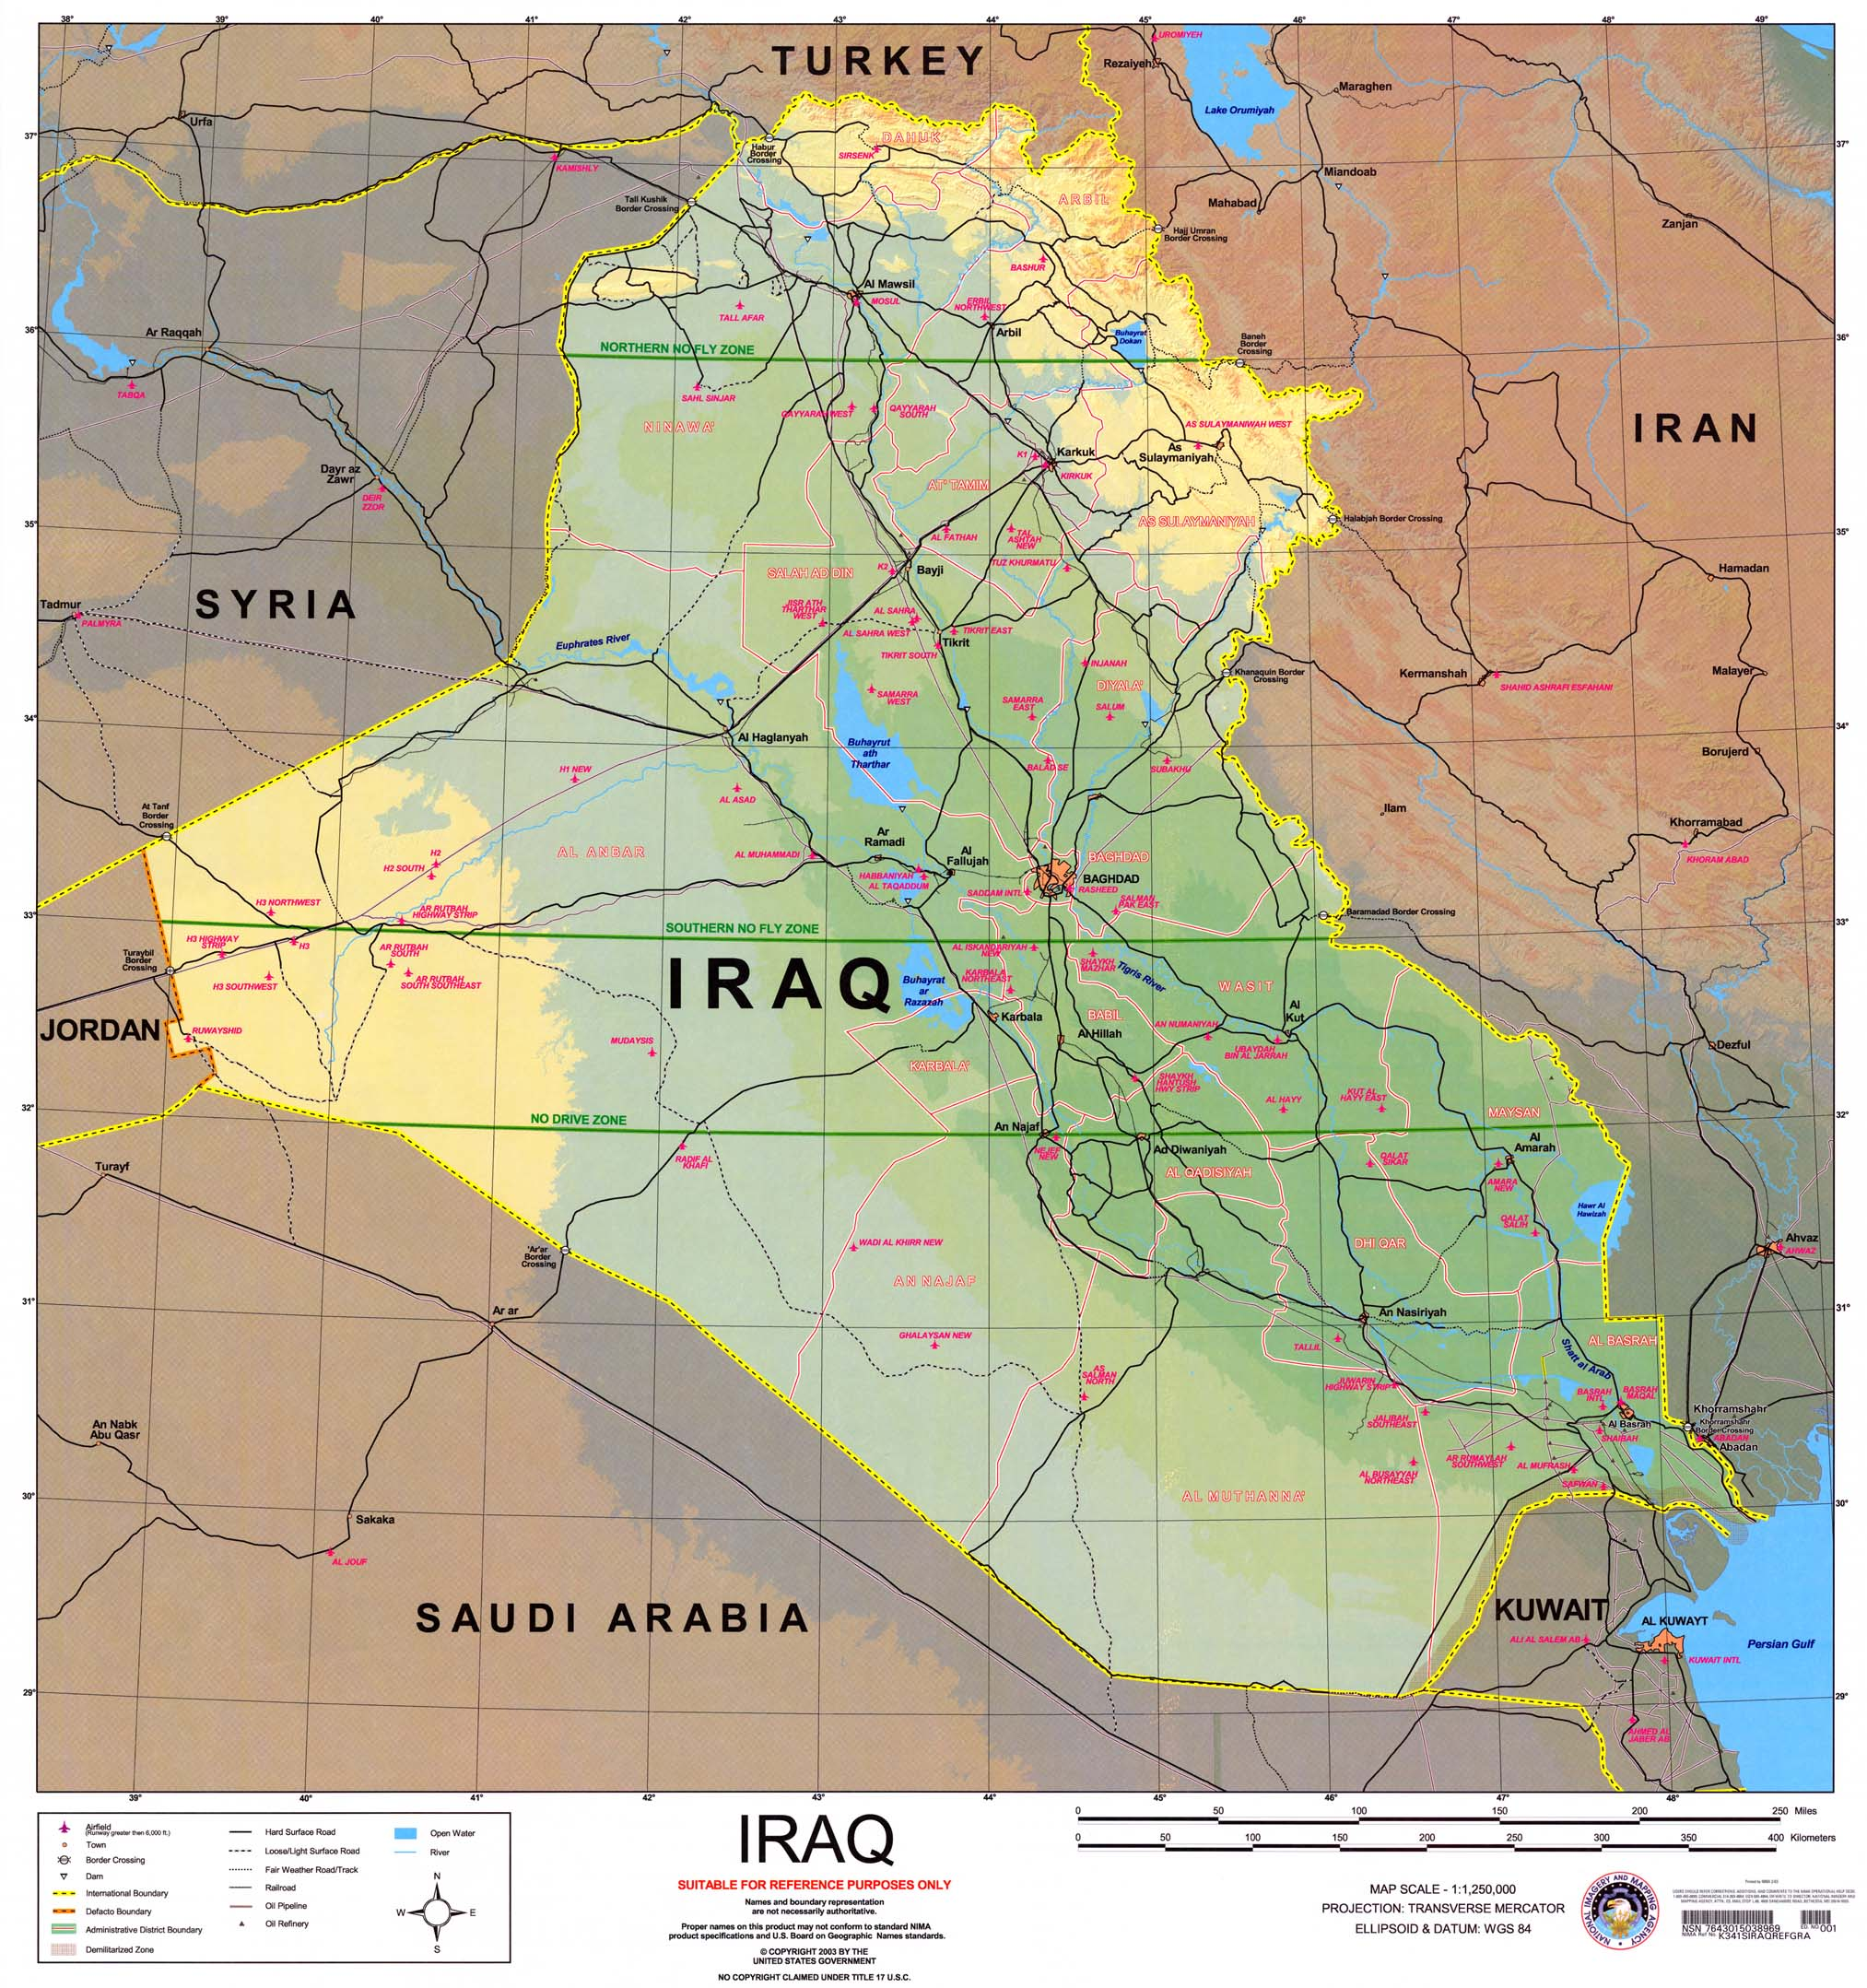 baghdad on a map with Free Iraq Maps on Islamic State Trains With American Armored Vehicles In Iraq in addition China 2015 Cars Kashgar Xinjiang Uyghur furthermore Irak likewise Article122 moreover Kingman Reef.